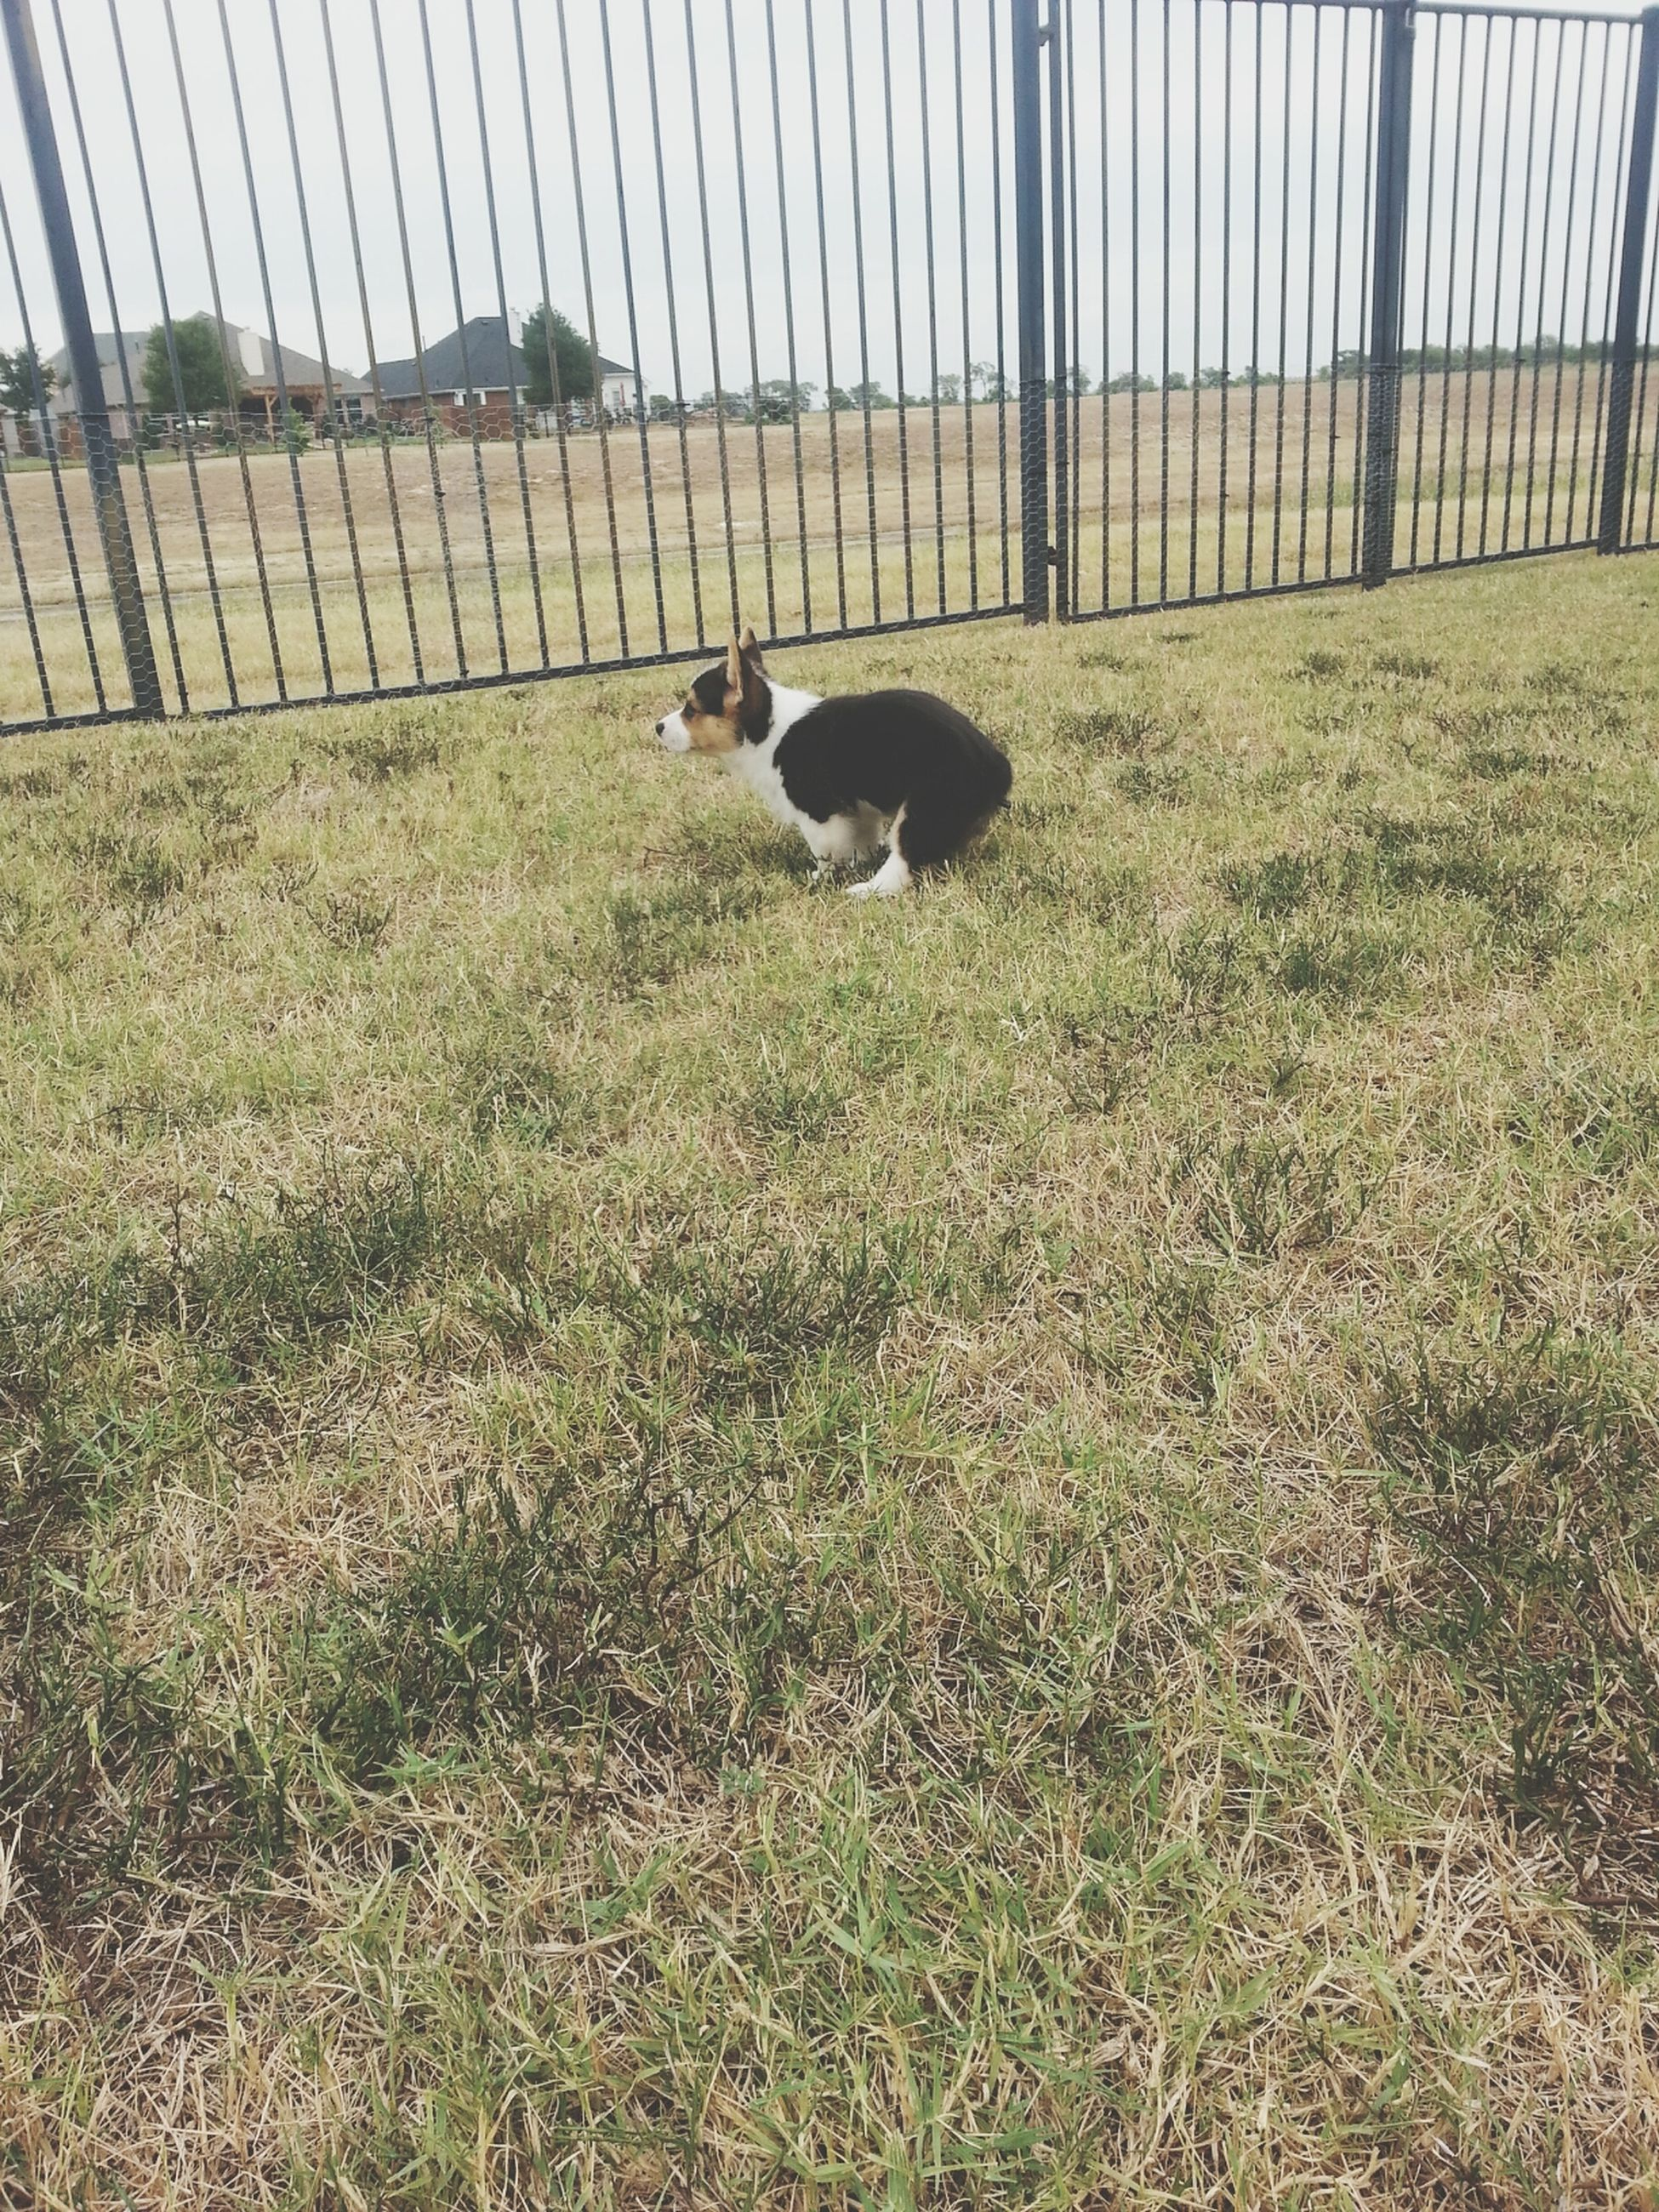 grass, animal themes, domestic animals, grassy, field, one animal, fence, mammal, pets, outdoors, day, nature, no people, green color, livestock, dog, full length, bird, wildlife, protection